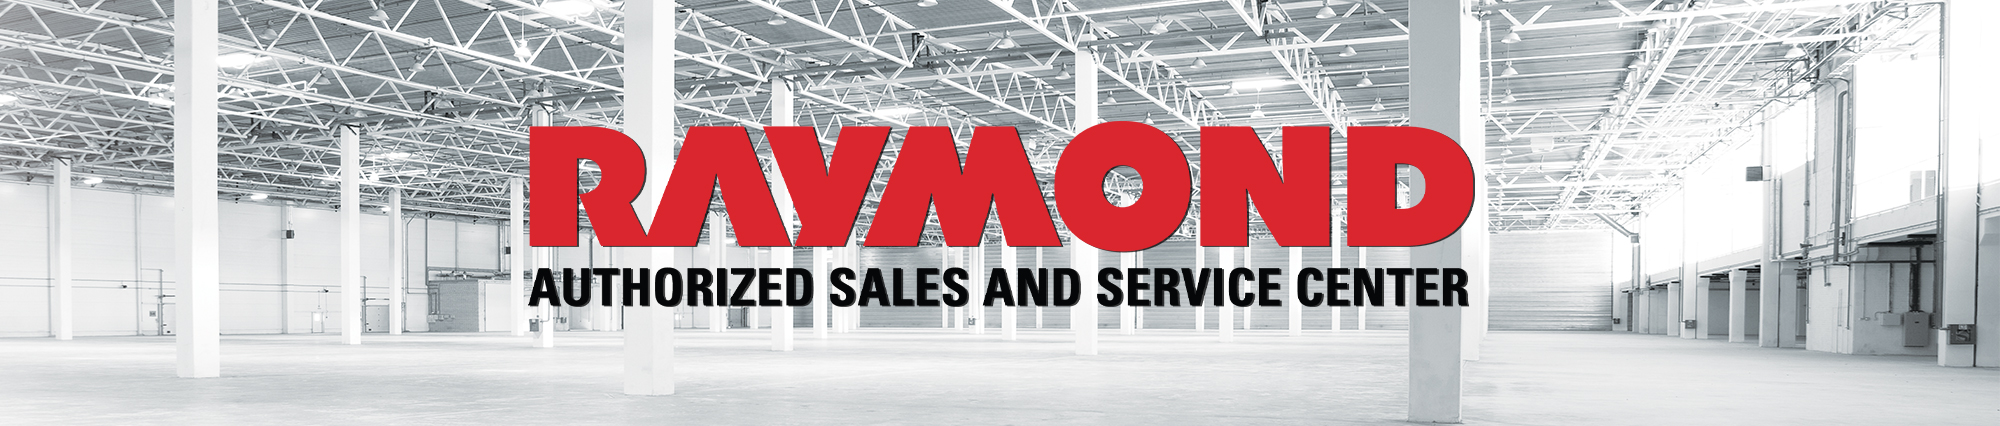 Pengate Handling Systems of Syracuse, New York: a Raymond Authorized Sales and Service Center